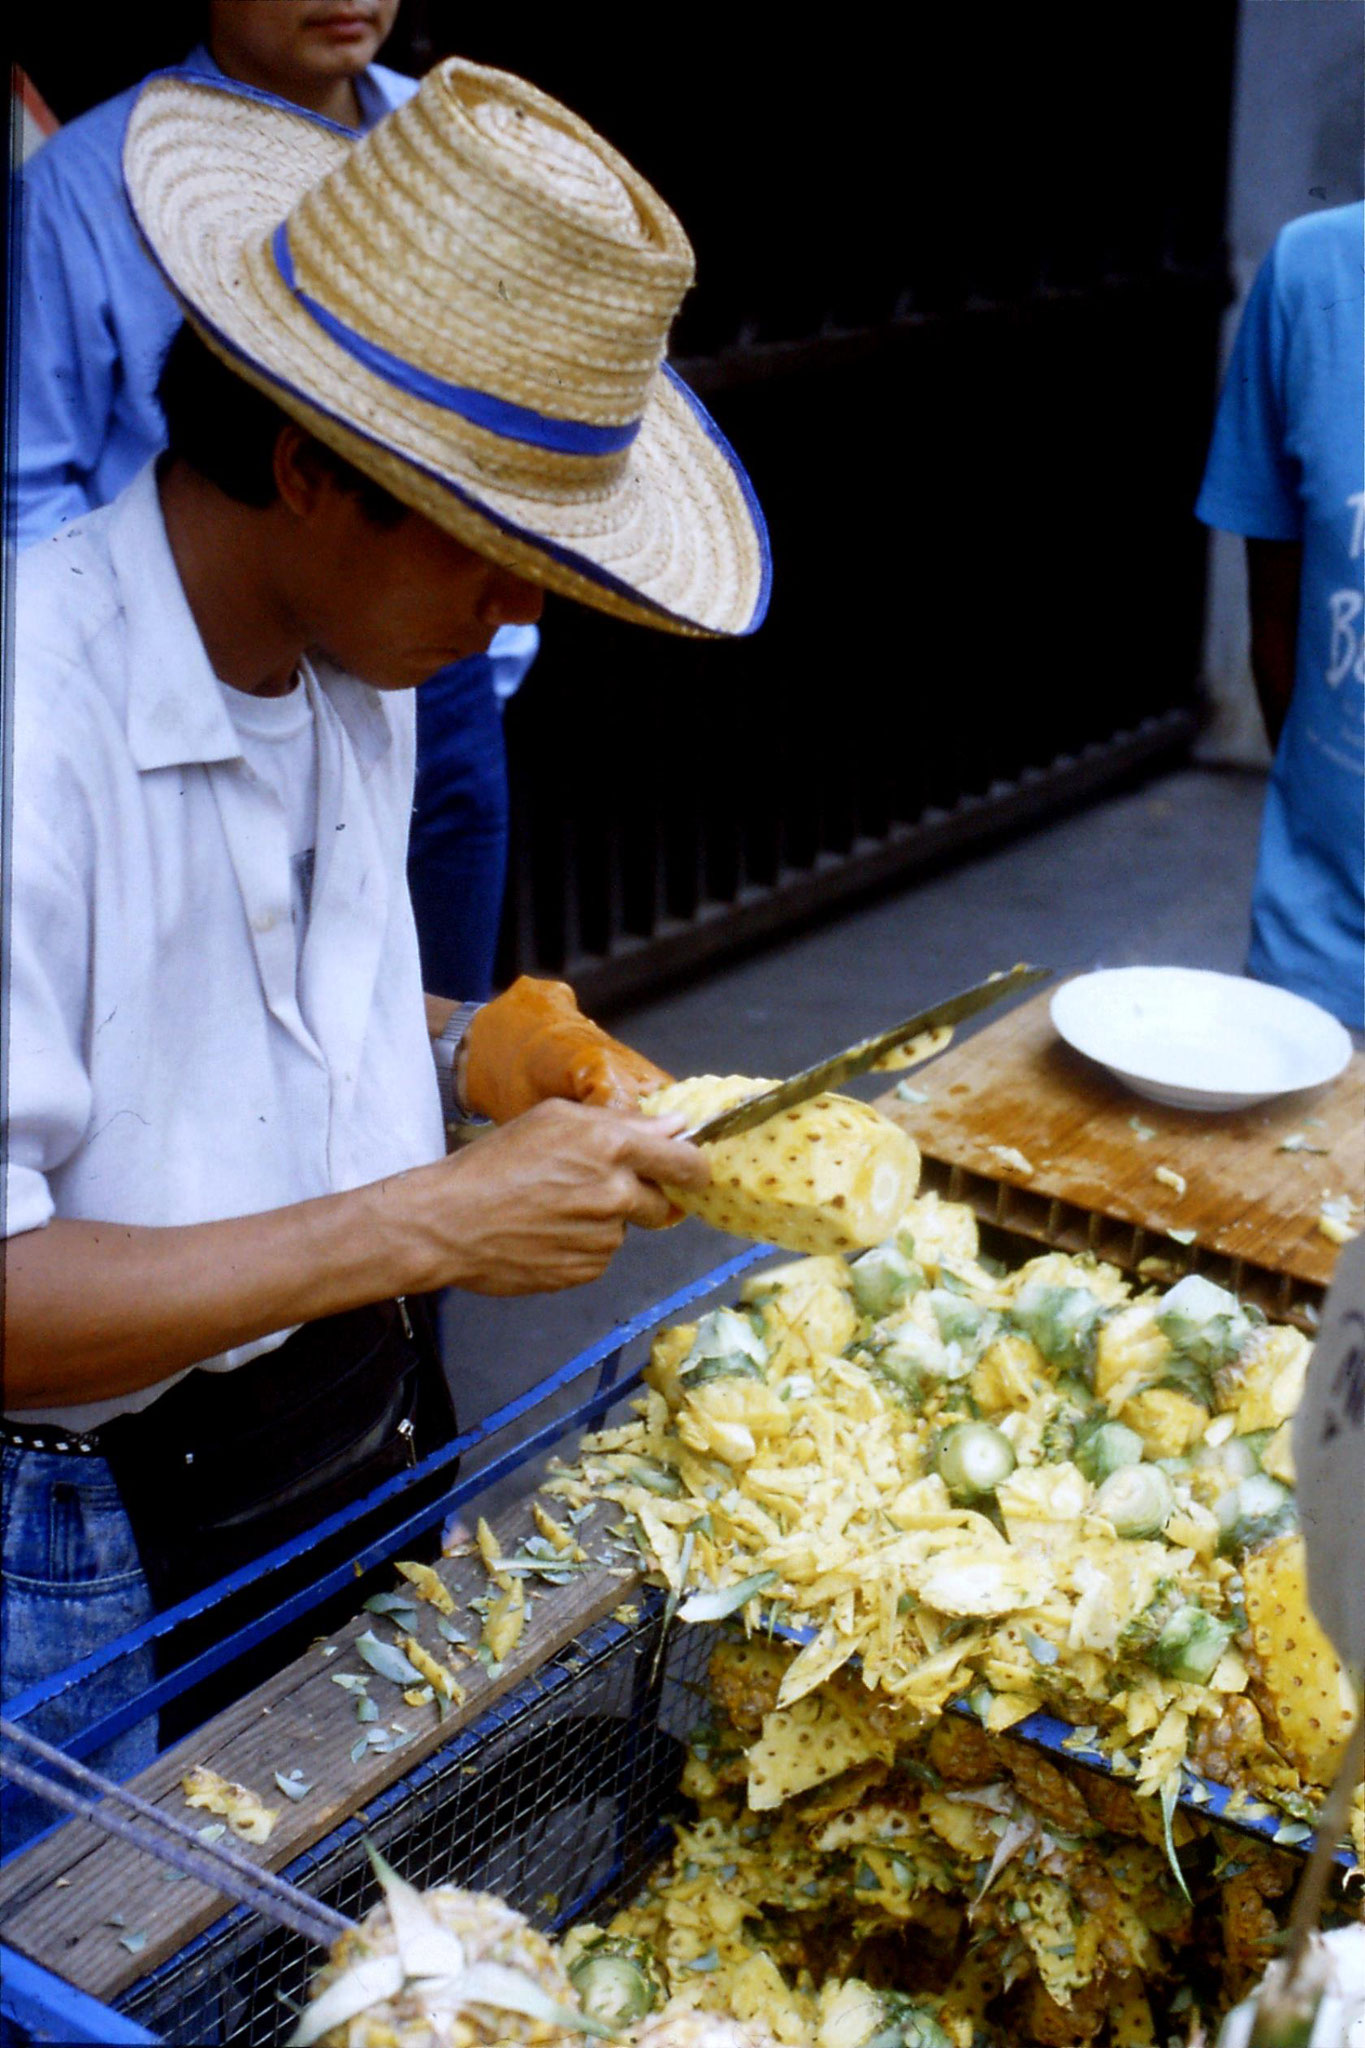 19/5/1990: 1: Bangkok pineapple vendor